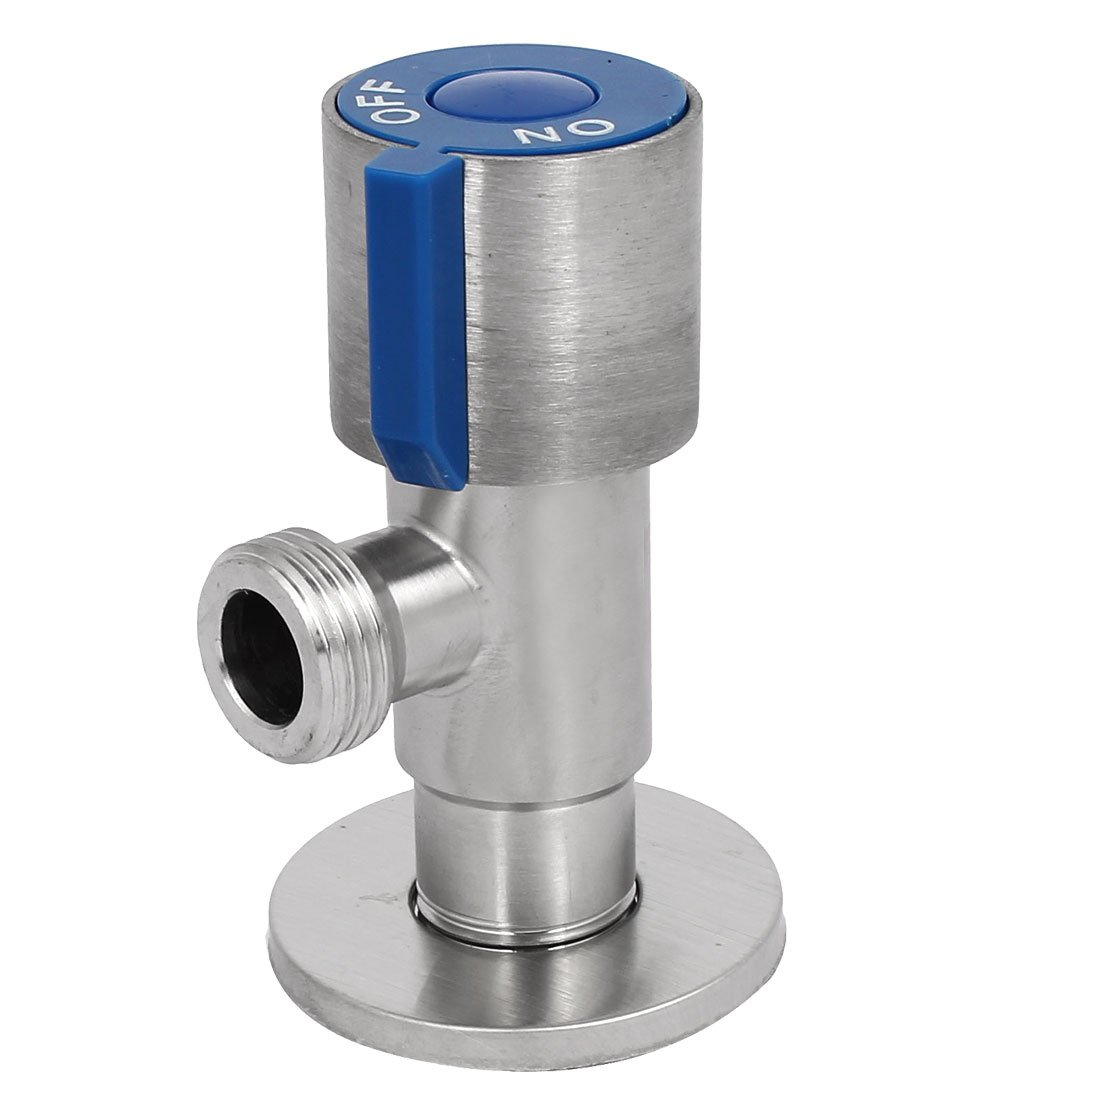 uxcell M20 Dia Male Thread 304 Stainless Steel Brass Core Angle Stop Valve Silver Tone